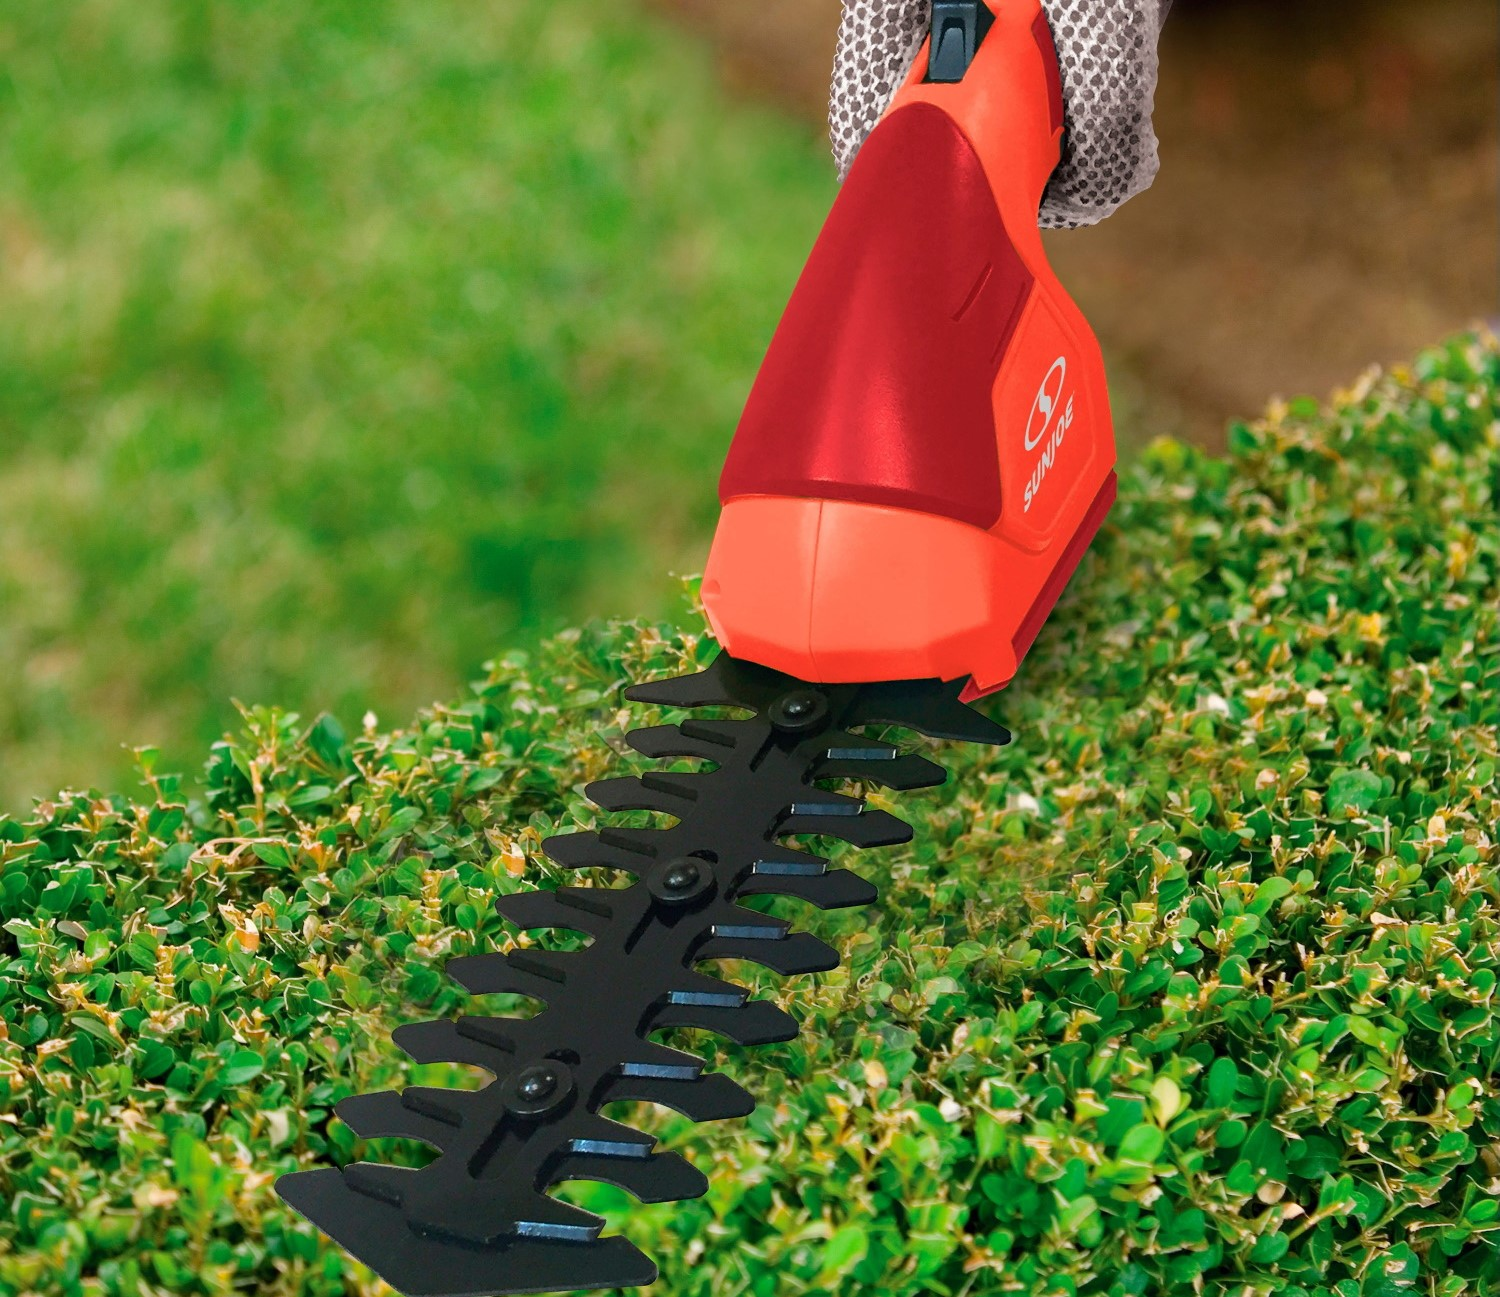 5 Best Lightweight Hedge Trimmers - Take Care of Your Garden With Ease